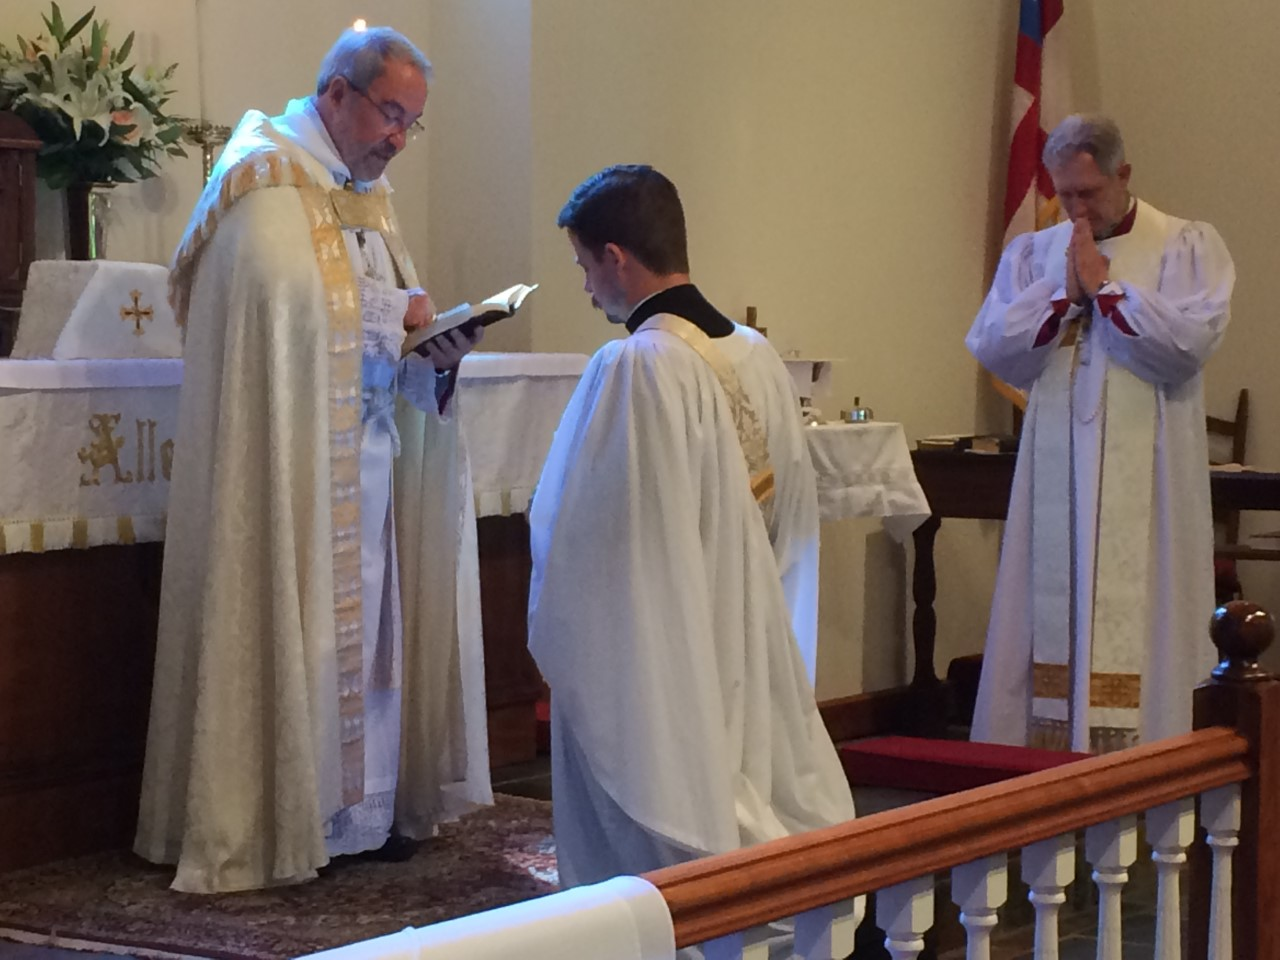 Bp. Grundorf blesses the parish's new curate